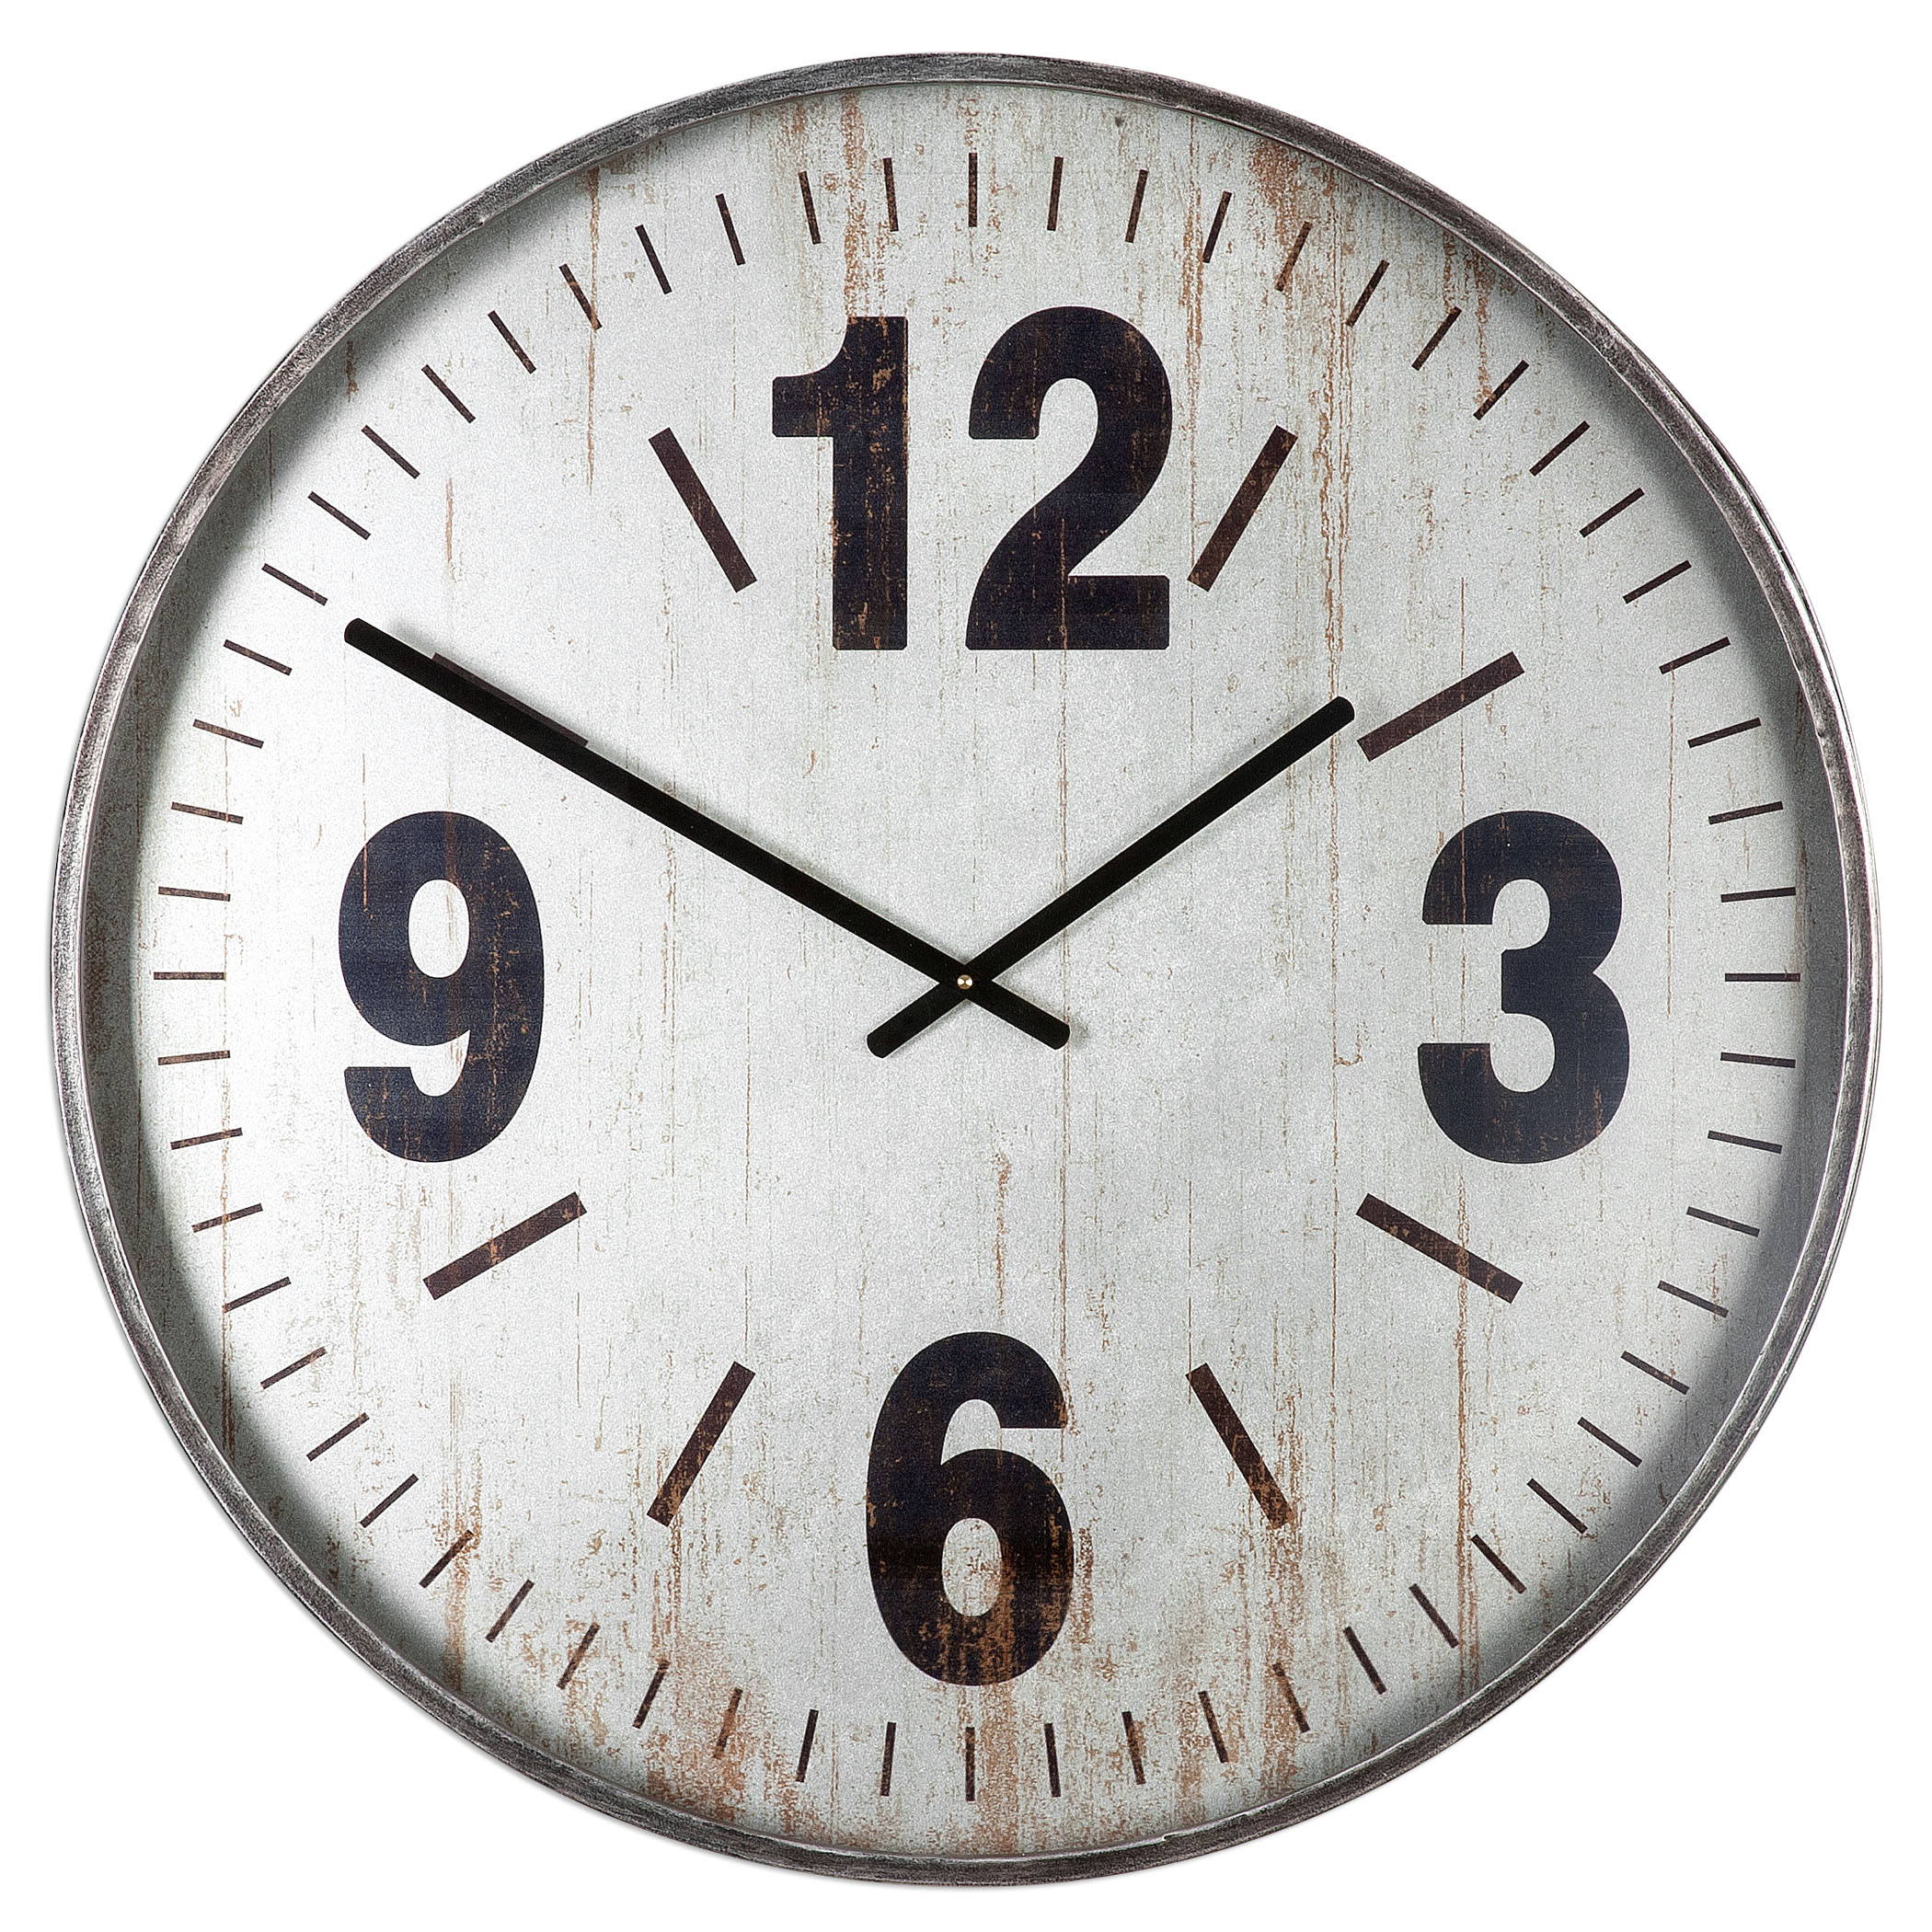 Uttermost Clocks Marino Oversized Wall Clock - Item Number: 06432